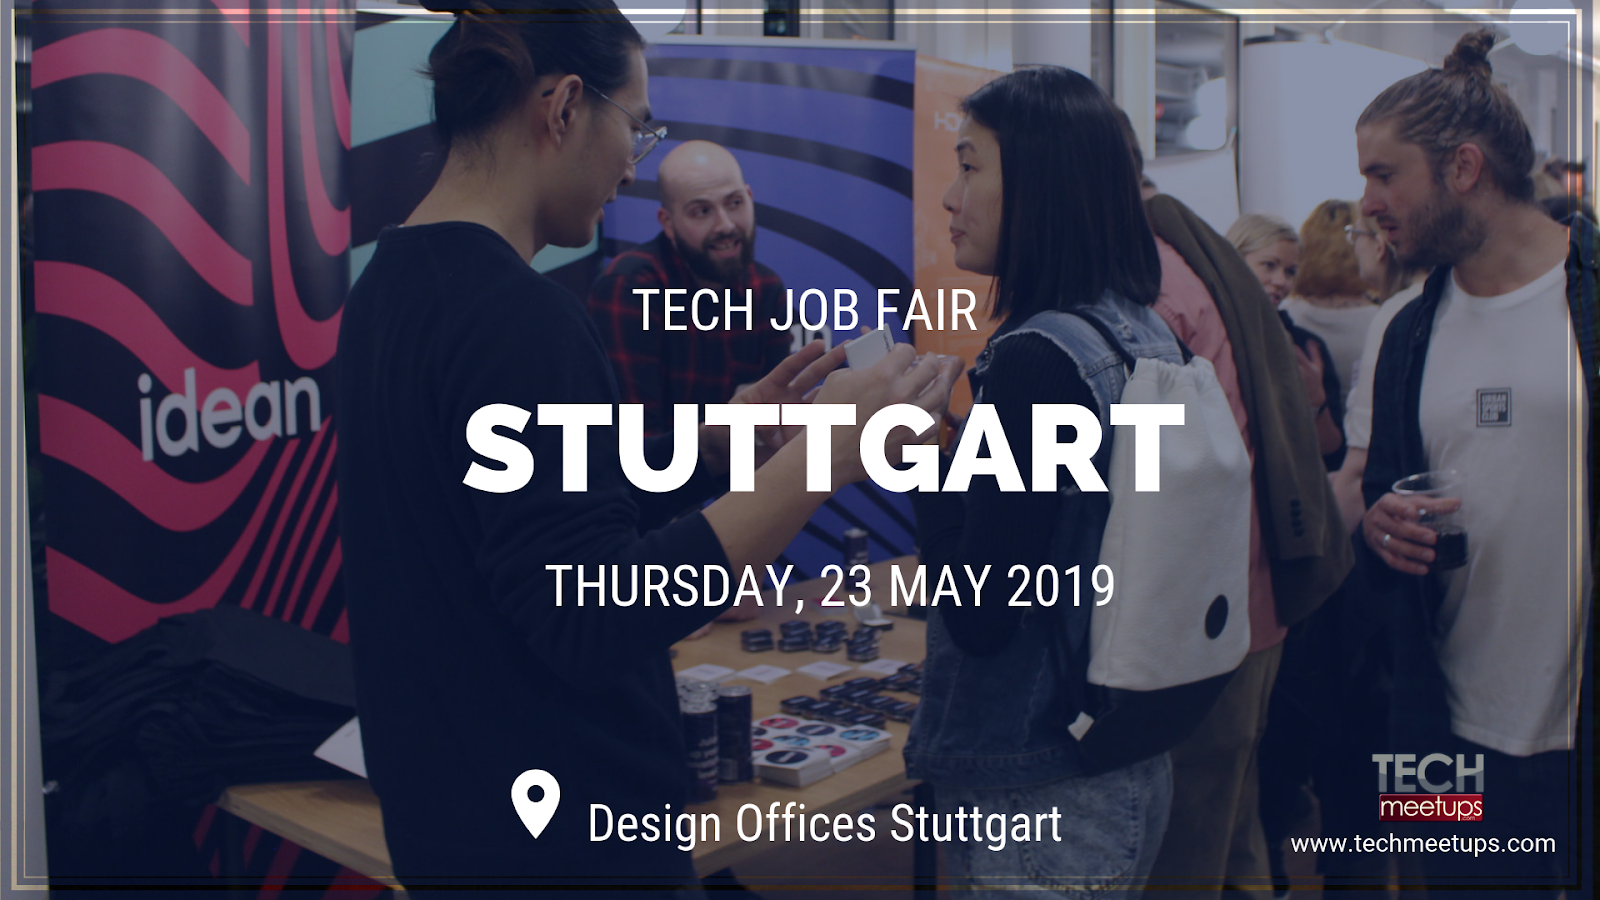 stuttgart tech job fair